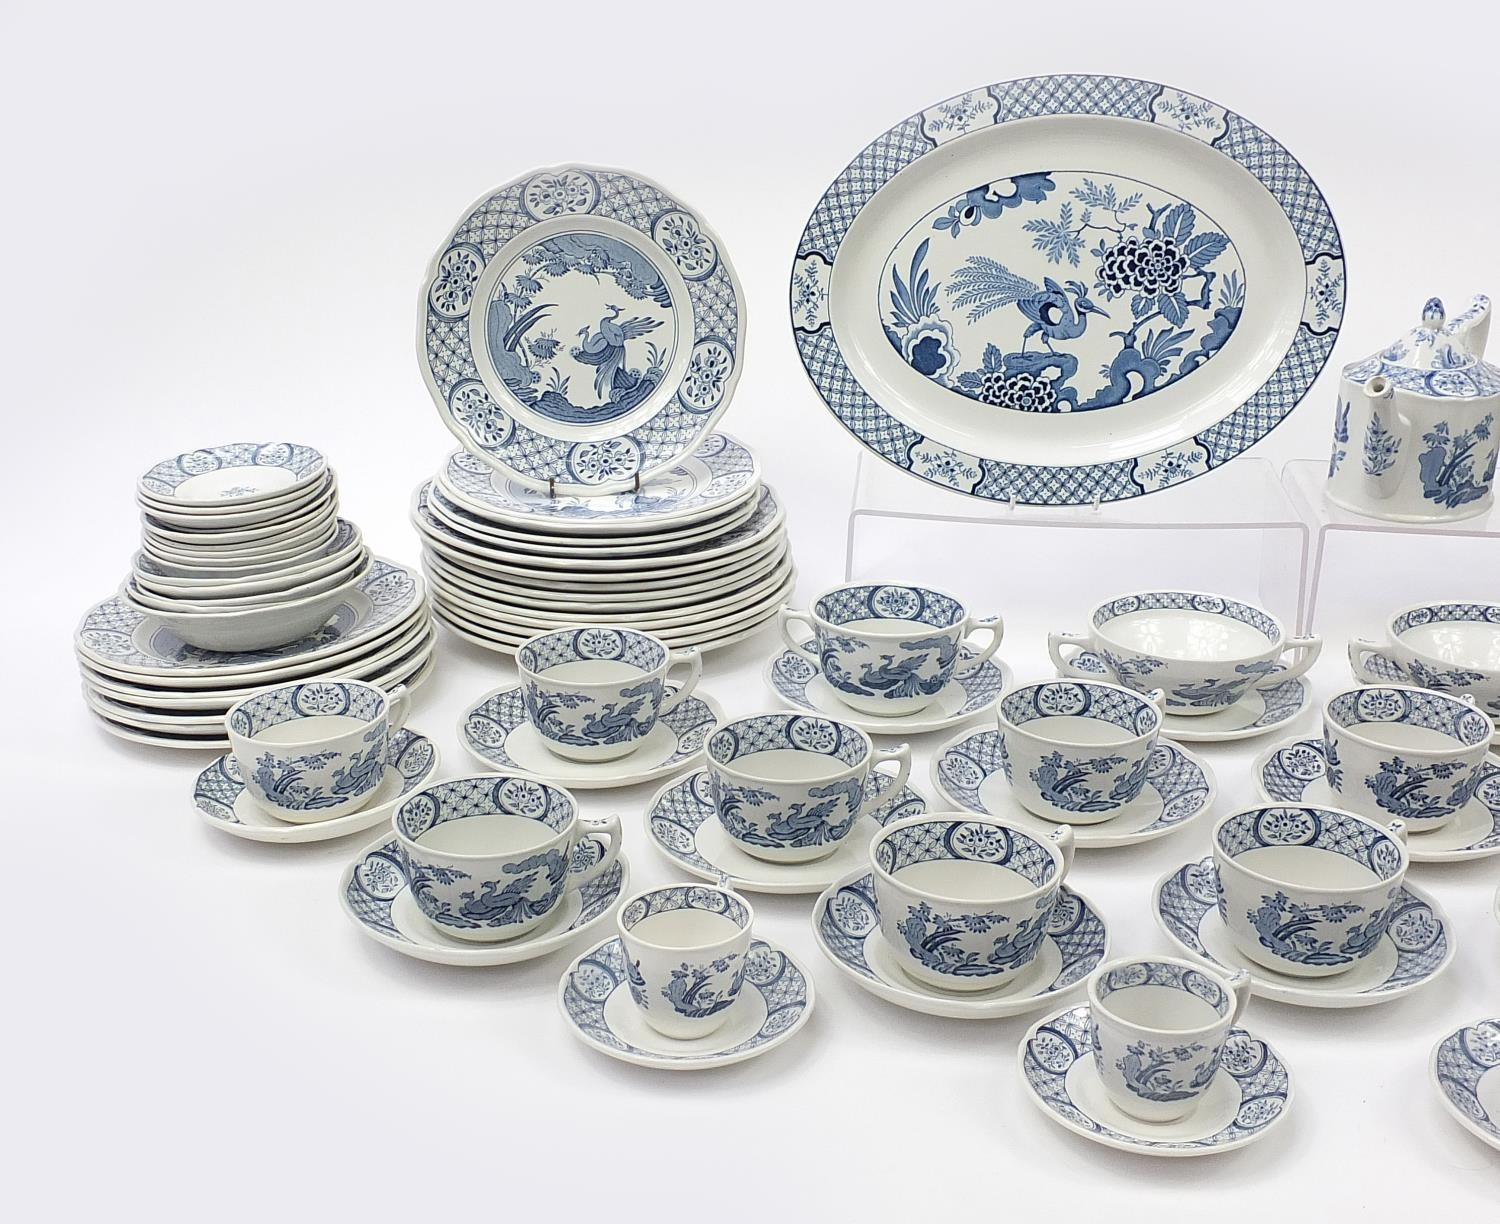 Collection of Furnivals & Masons Old Chelsea dinner and teaware including teapot and stand, cups - Image 2 of 5